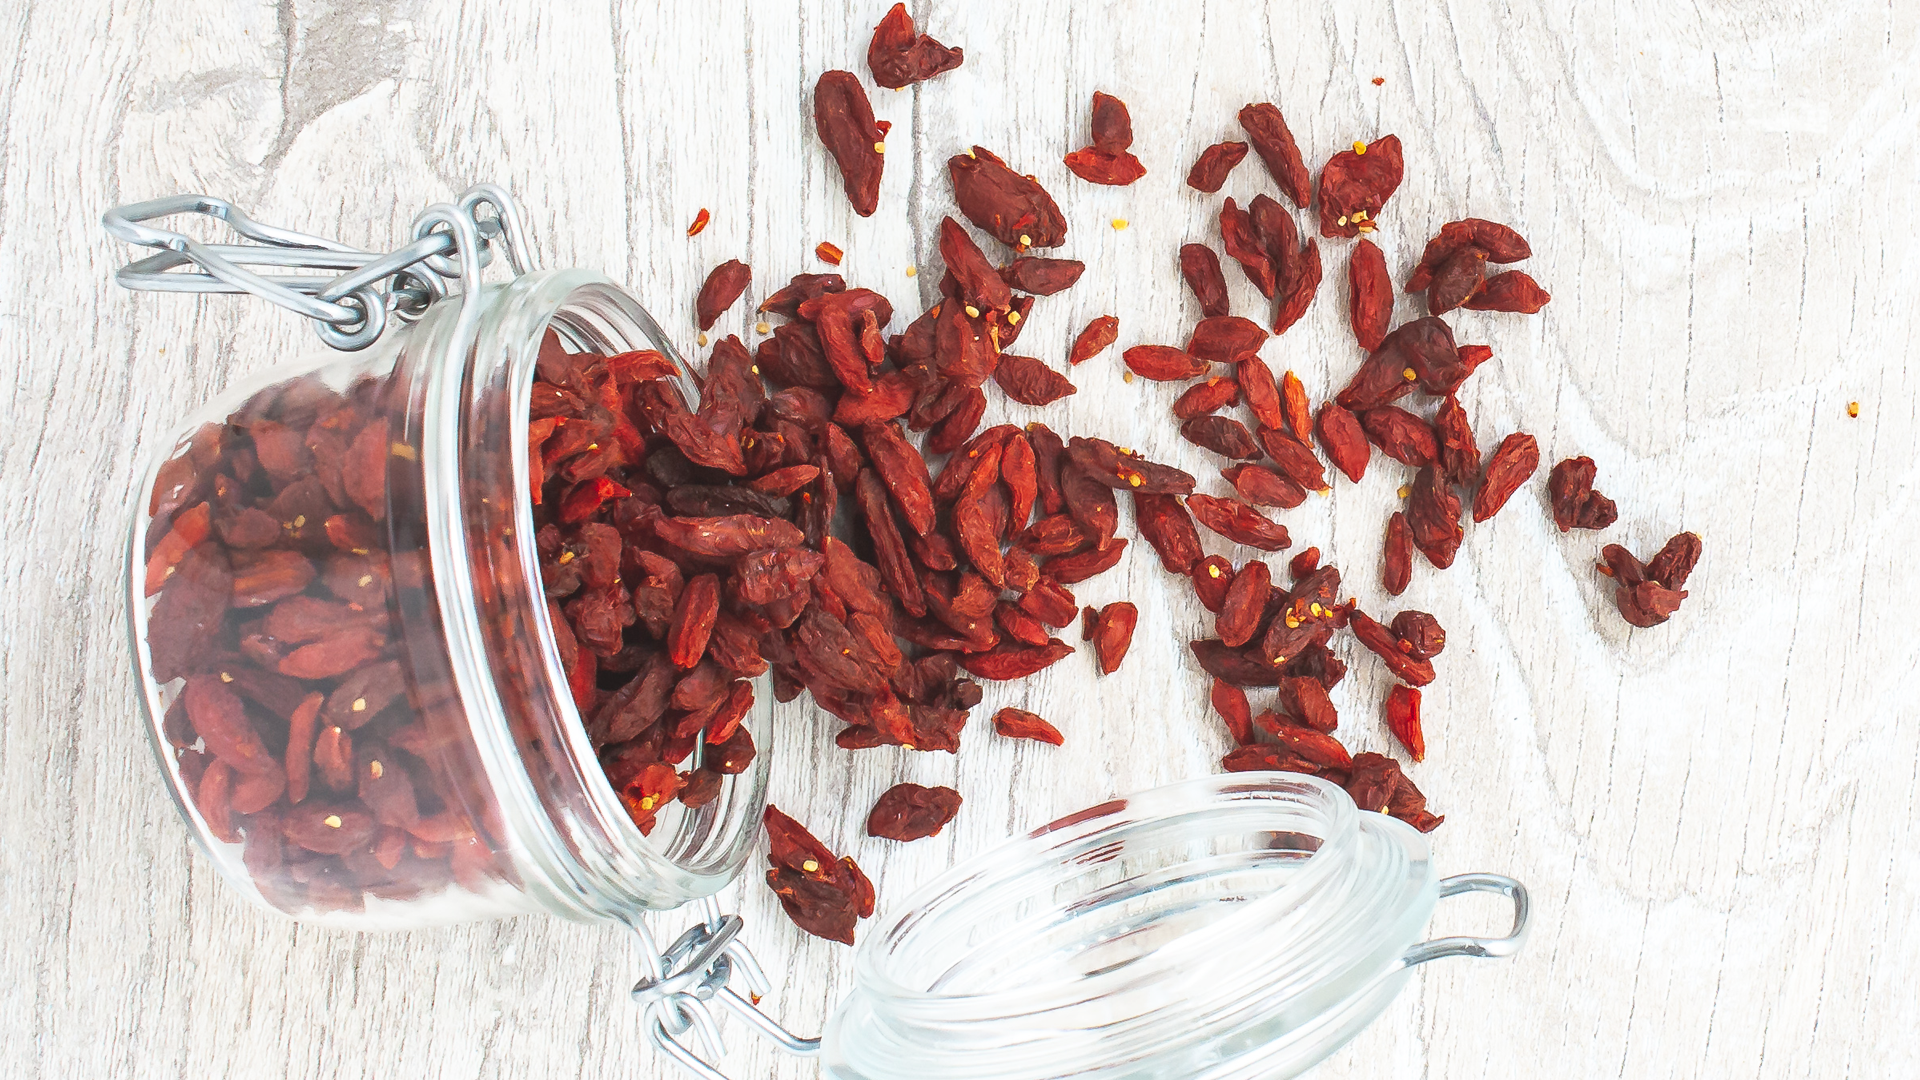 Superfood Goji Berry: Nutrition & Benefits Article Thumbnail